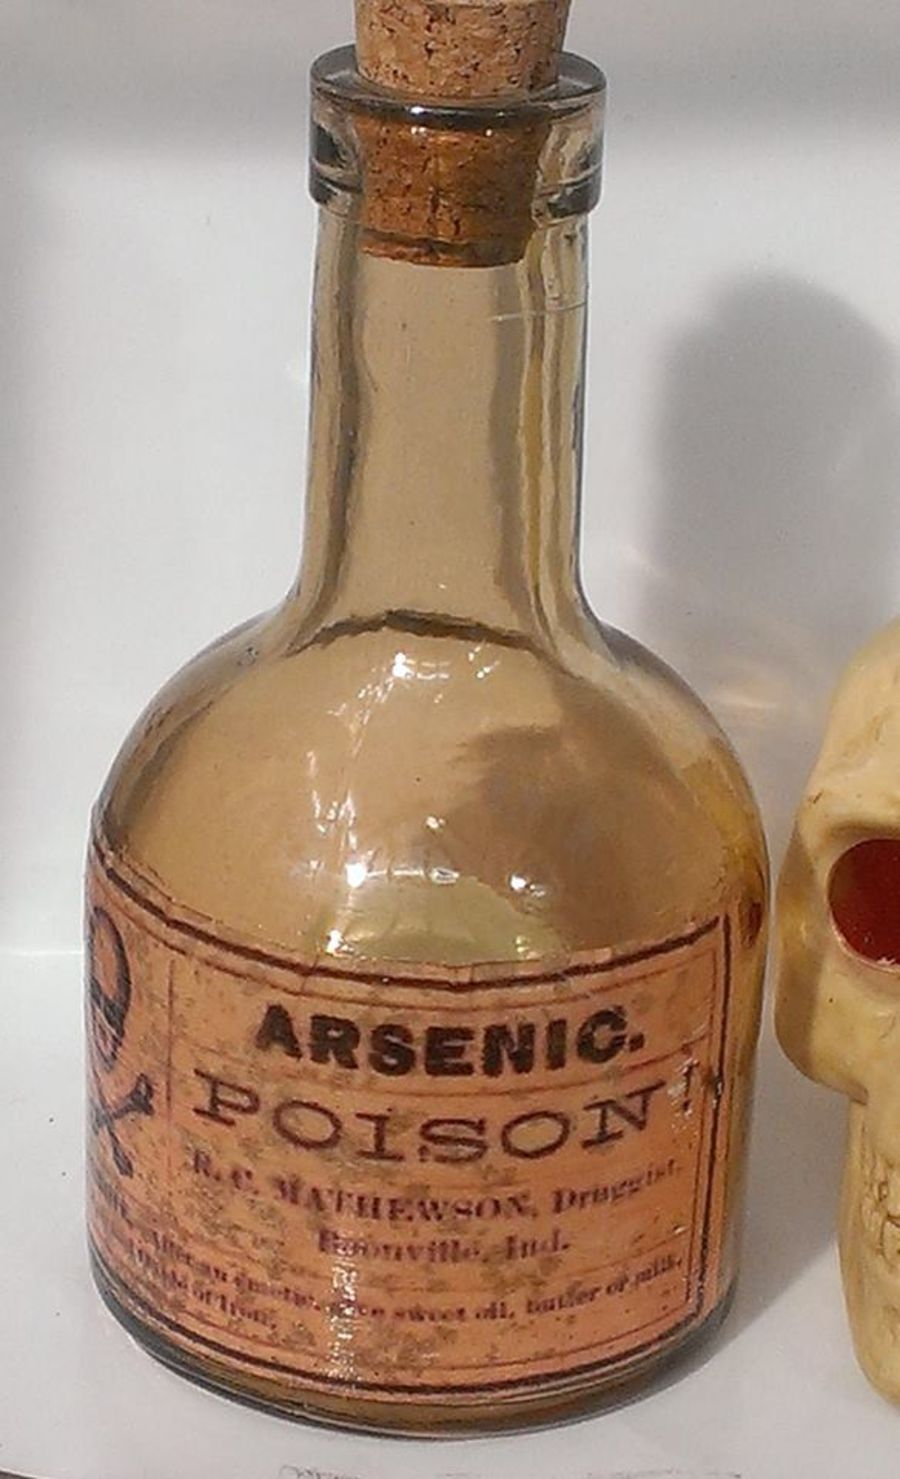 Arsenic Poison Glass Bottle Decoration Decoupaged